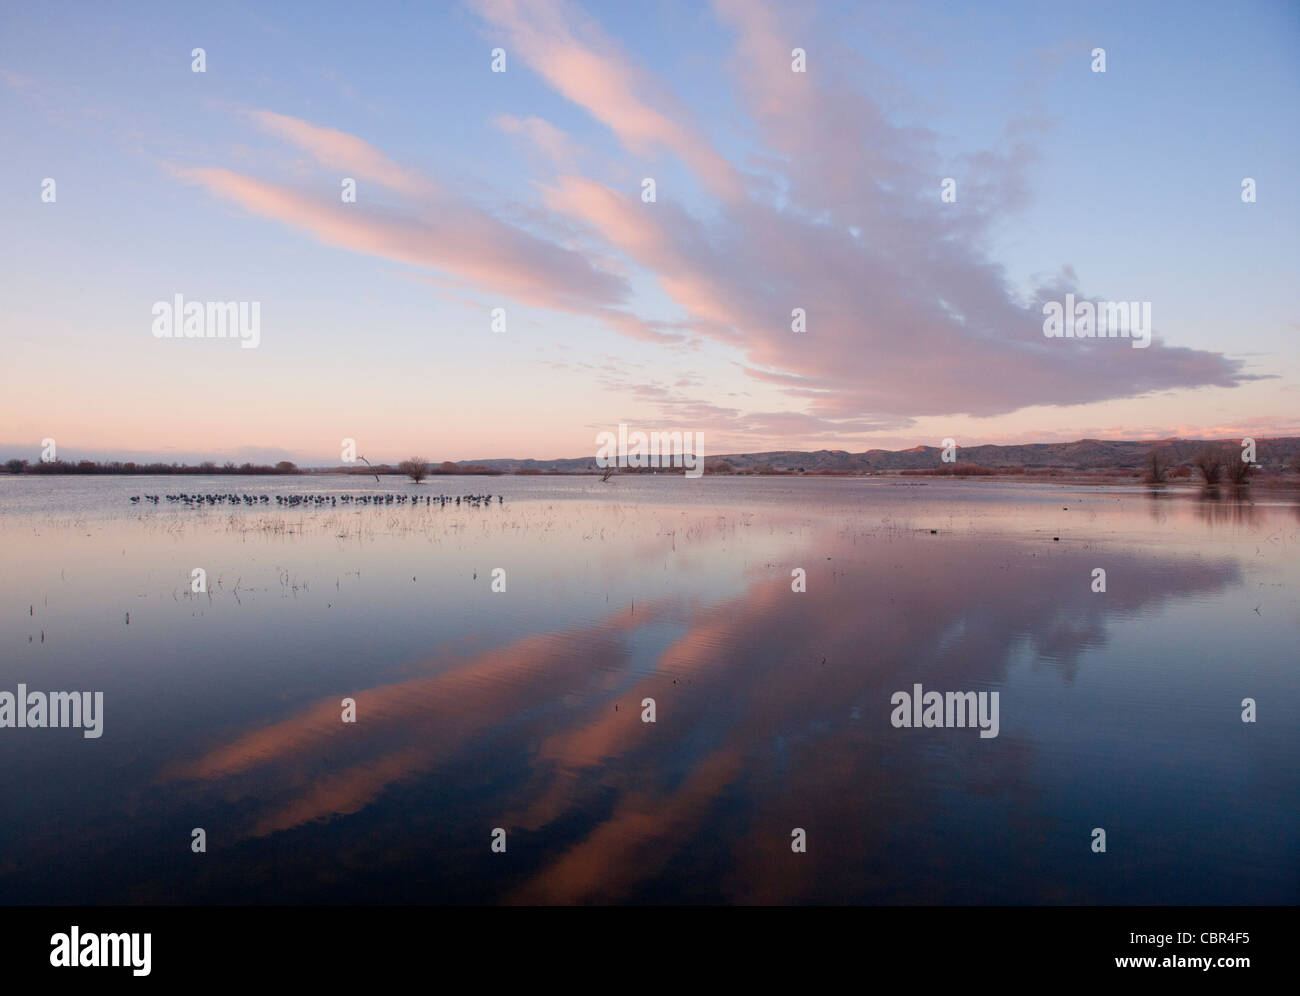 Cloud Formation and Reflection - Stock Image